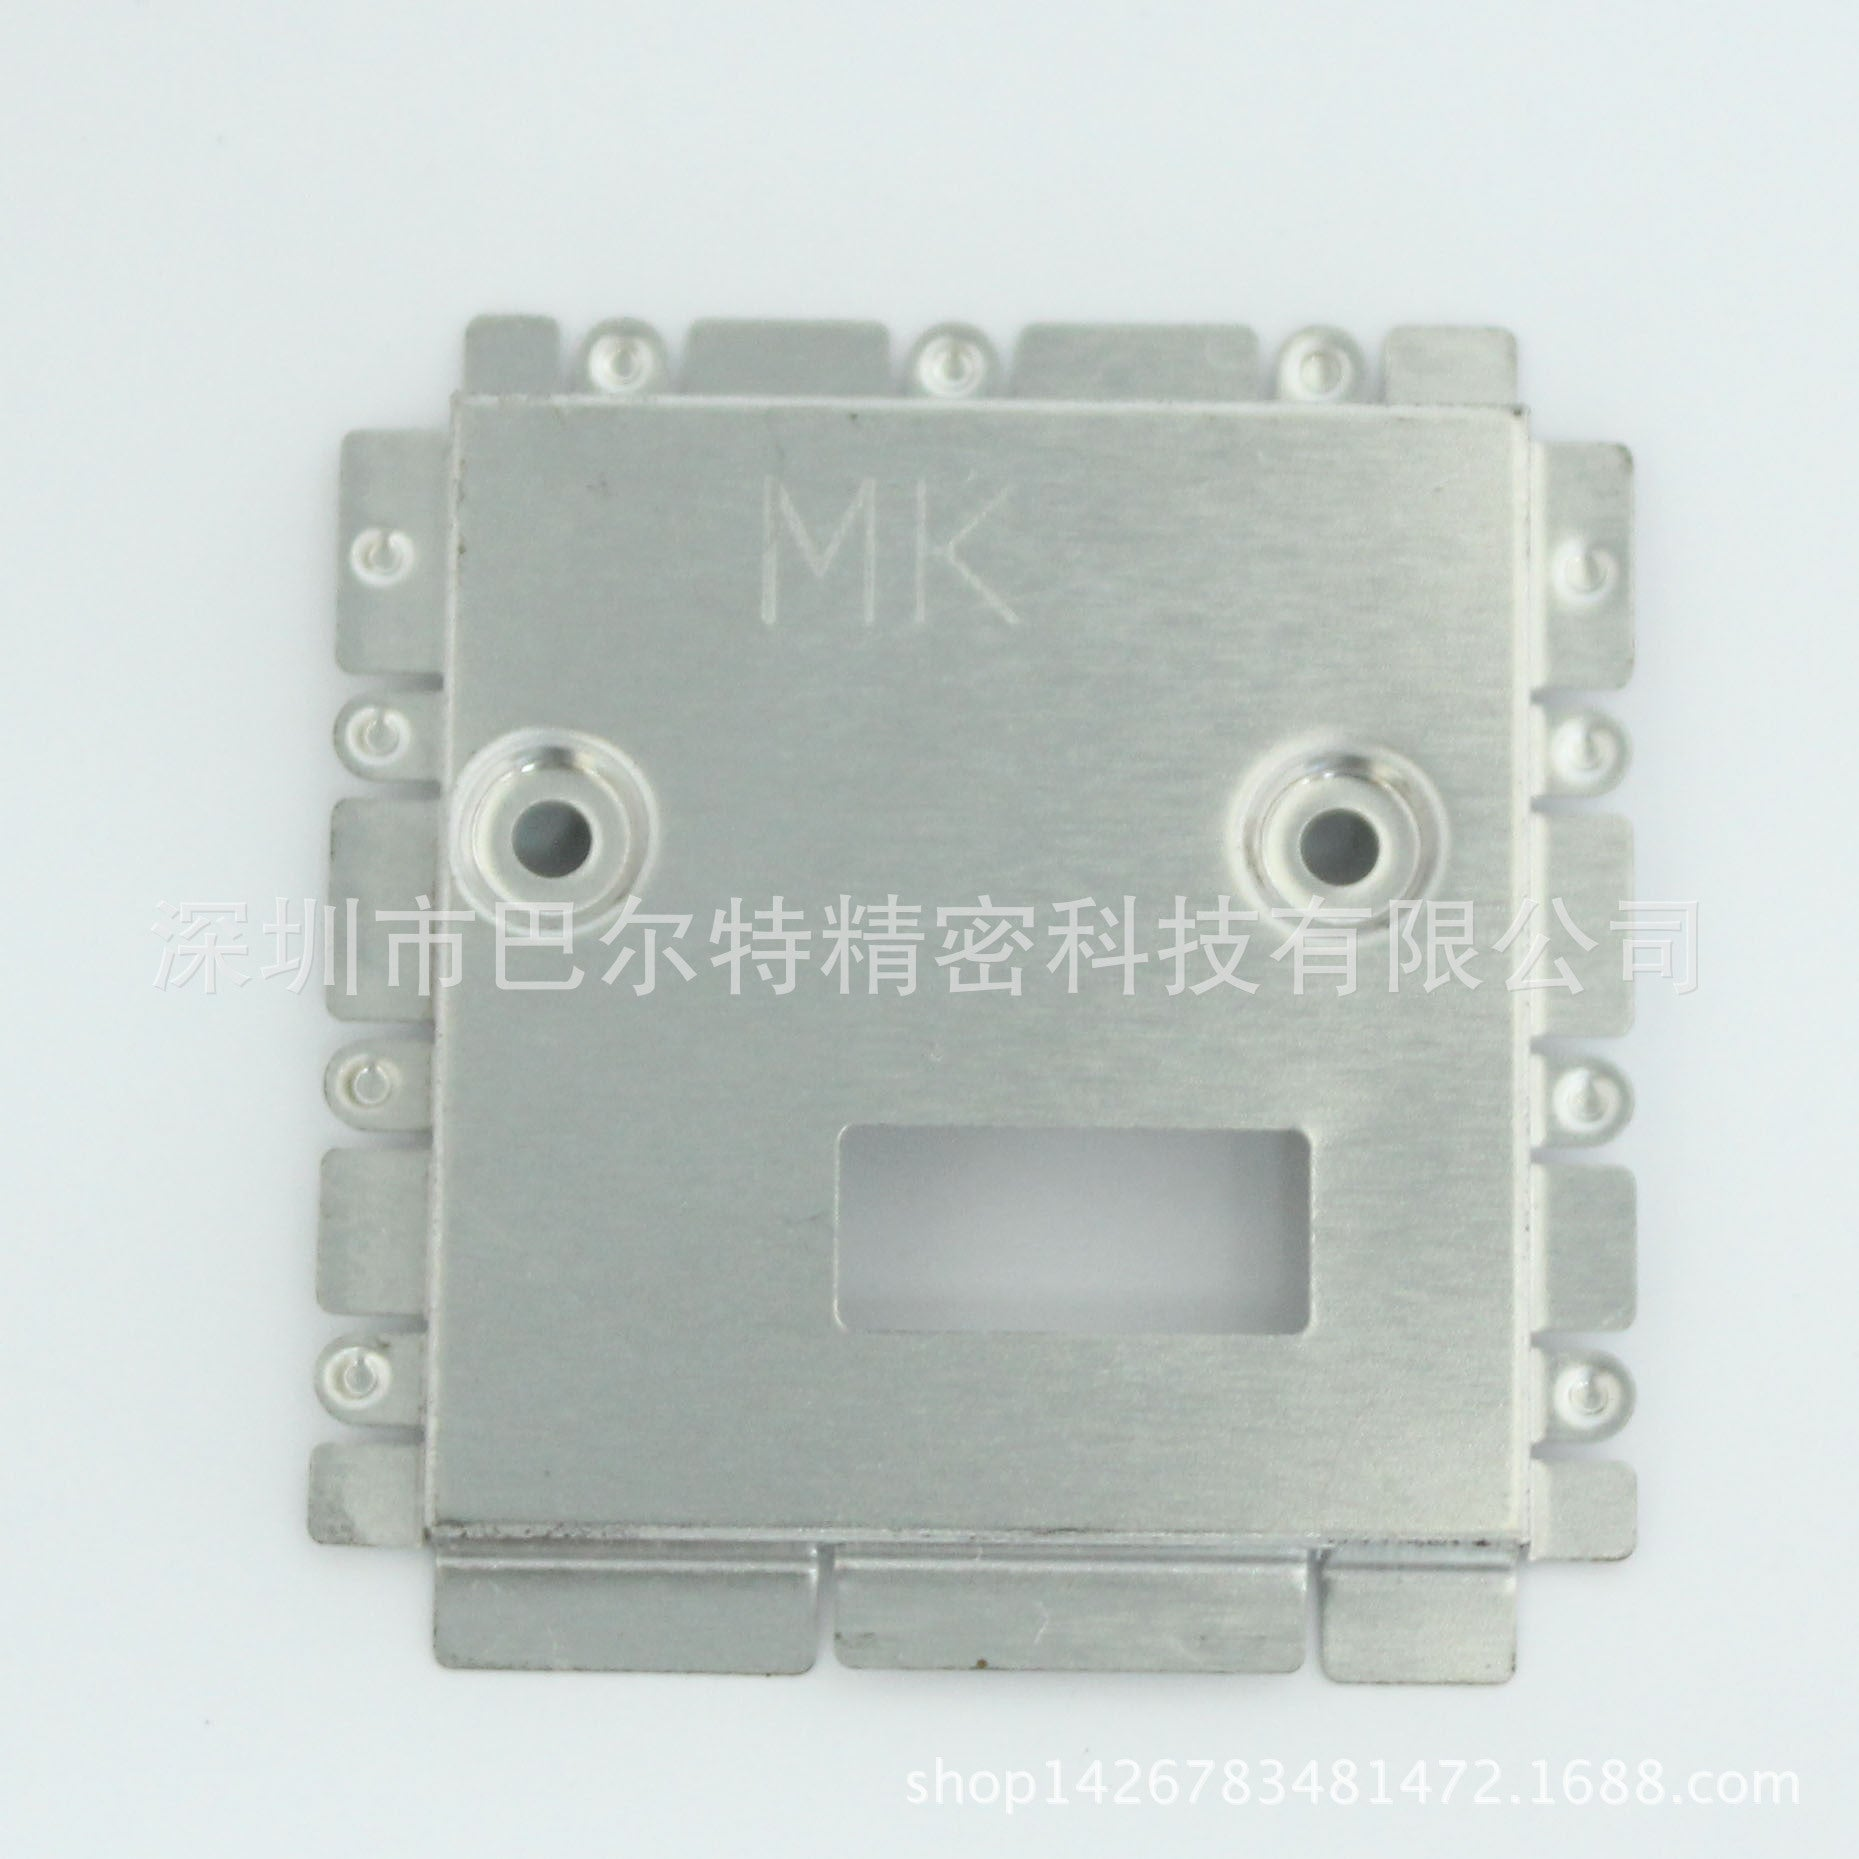 Shenzhen precision stamping factory shield cover shield white copper shield mask tinplate shield cover etching shield